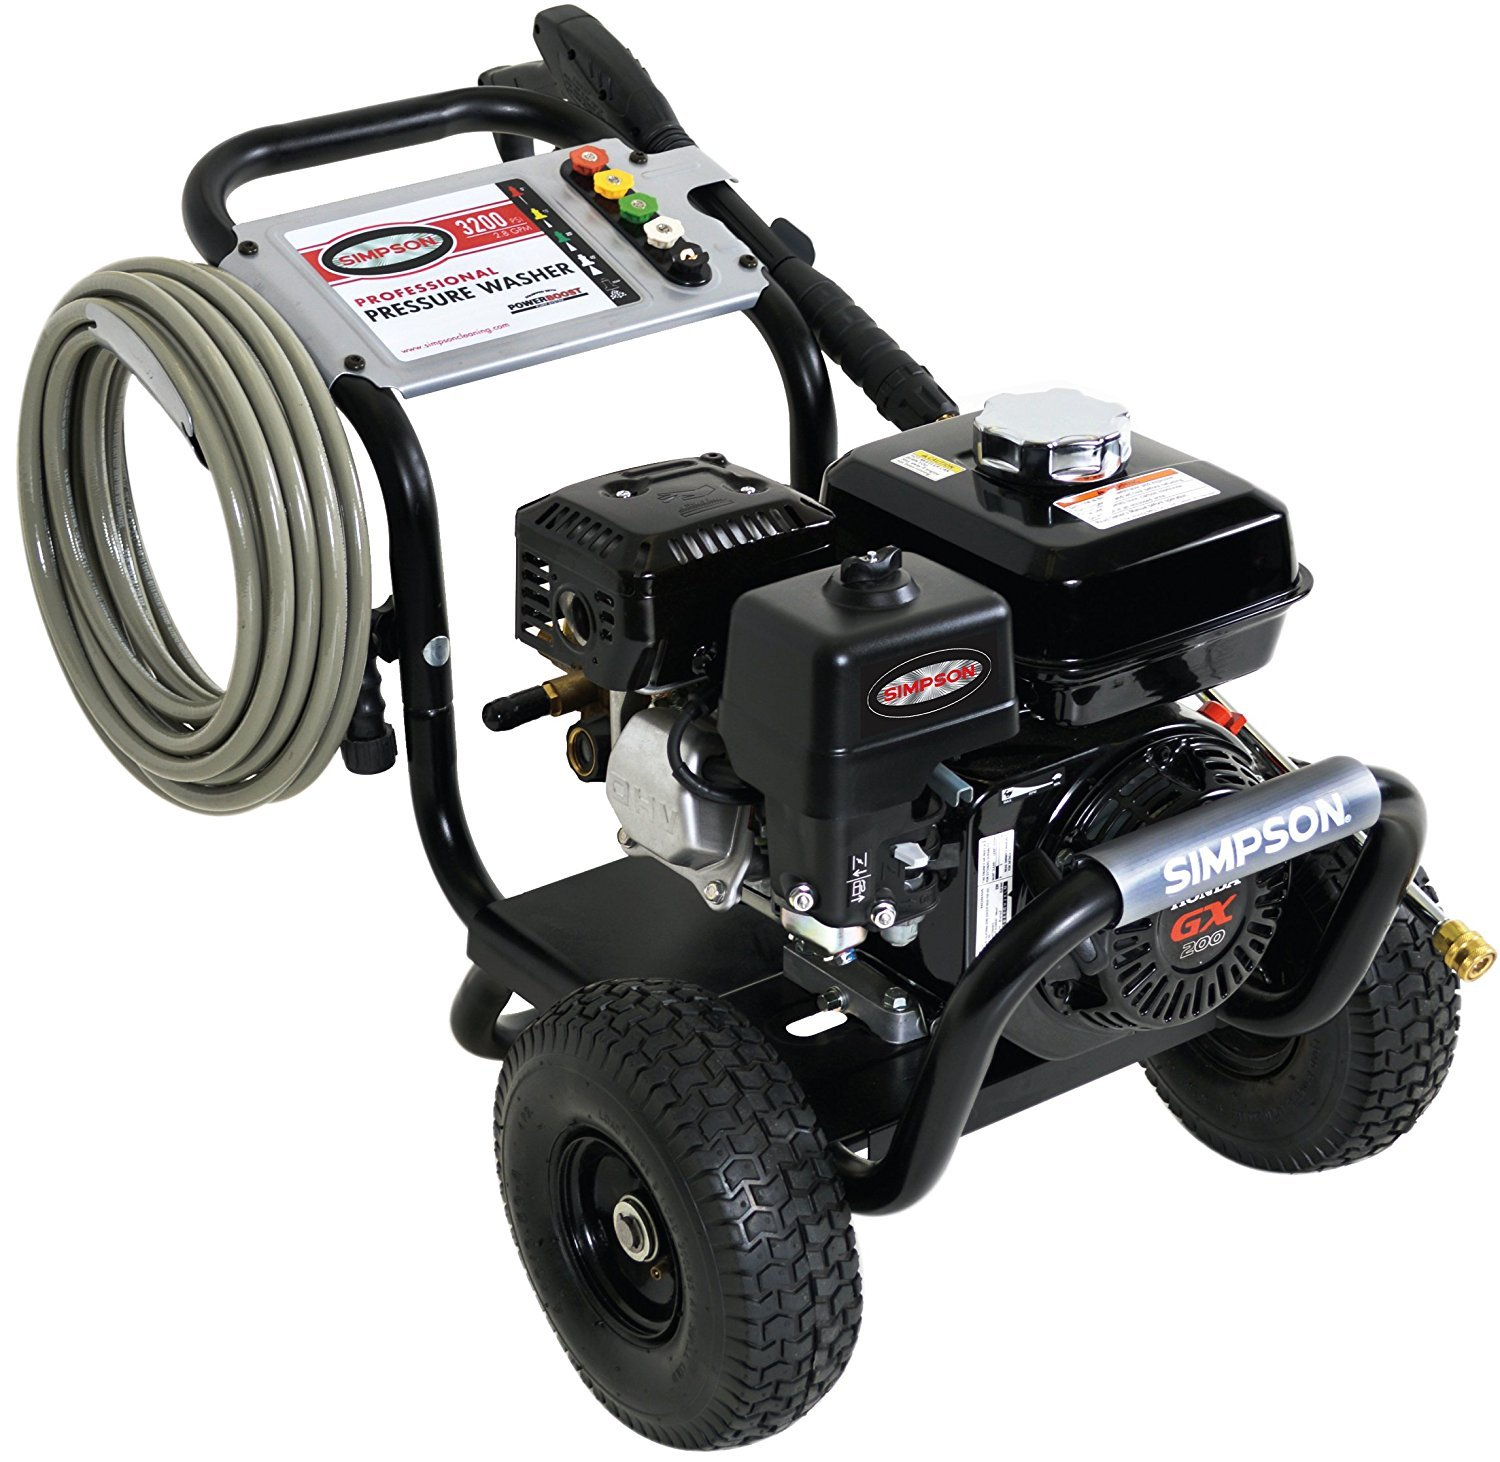 simpson-cleaning-ps3228-s-3200-psi-at-2.8-gpm-gas-pressure-washer-powered-honda-aaa-triplex-pump-best-commercial-pressure-washers-reviews